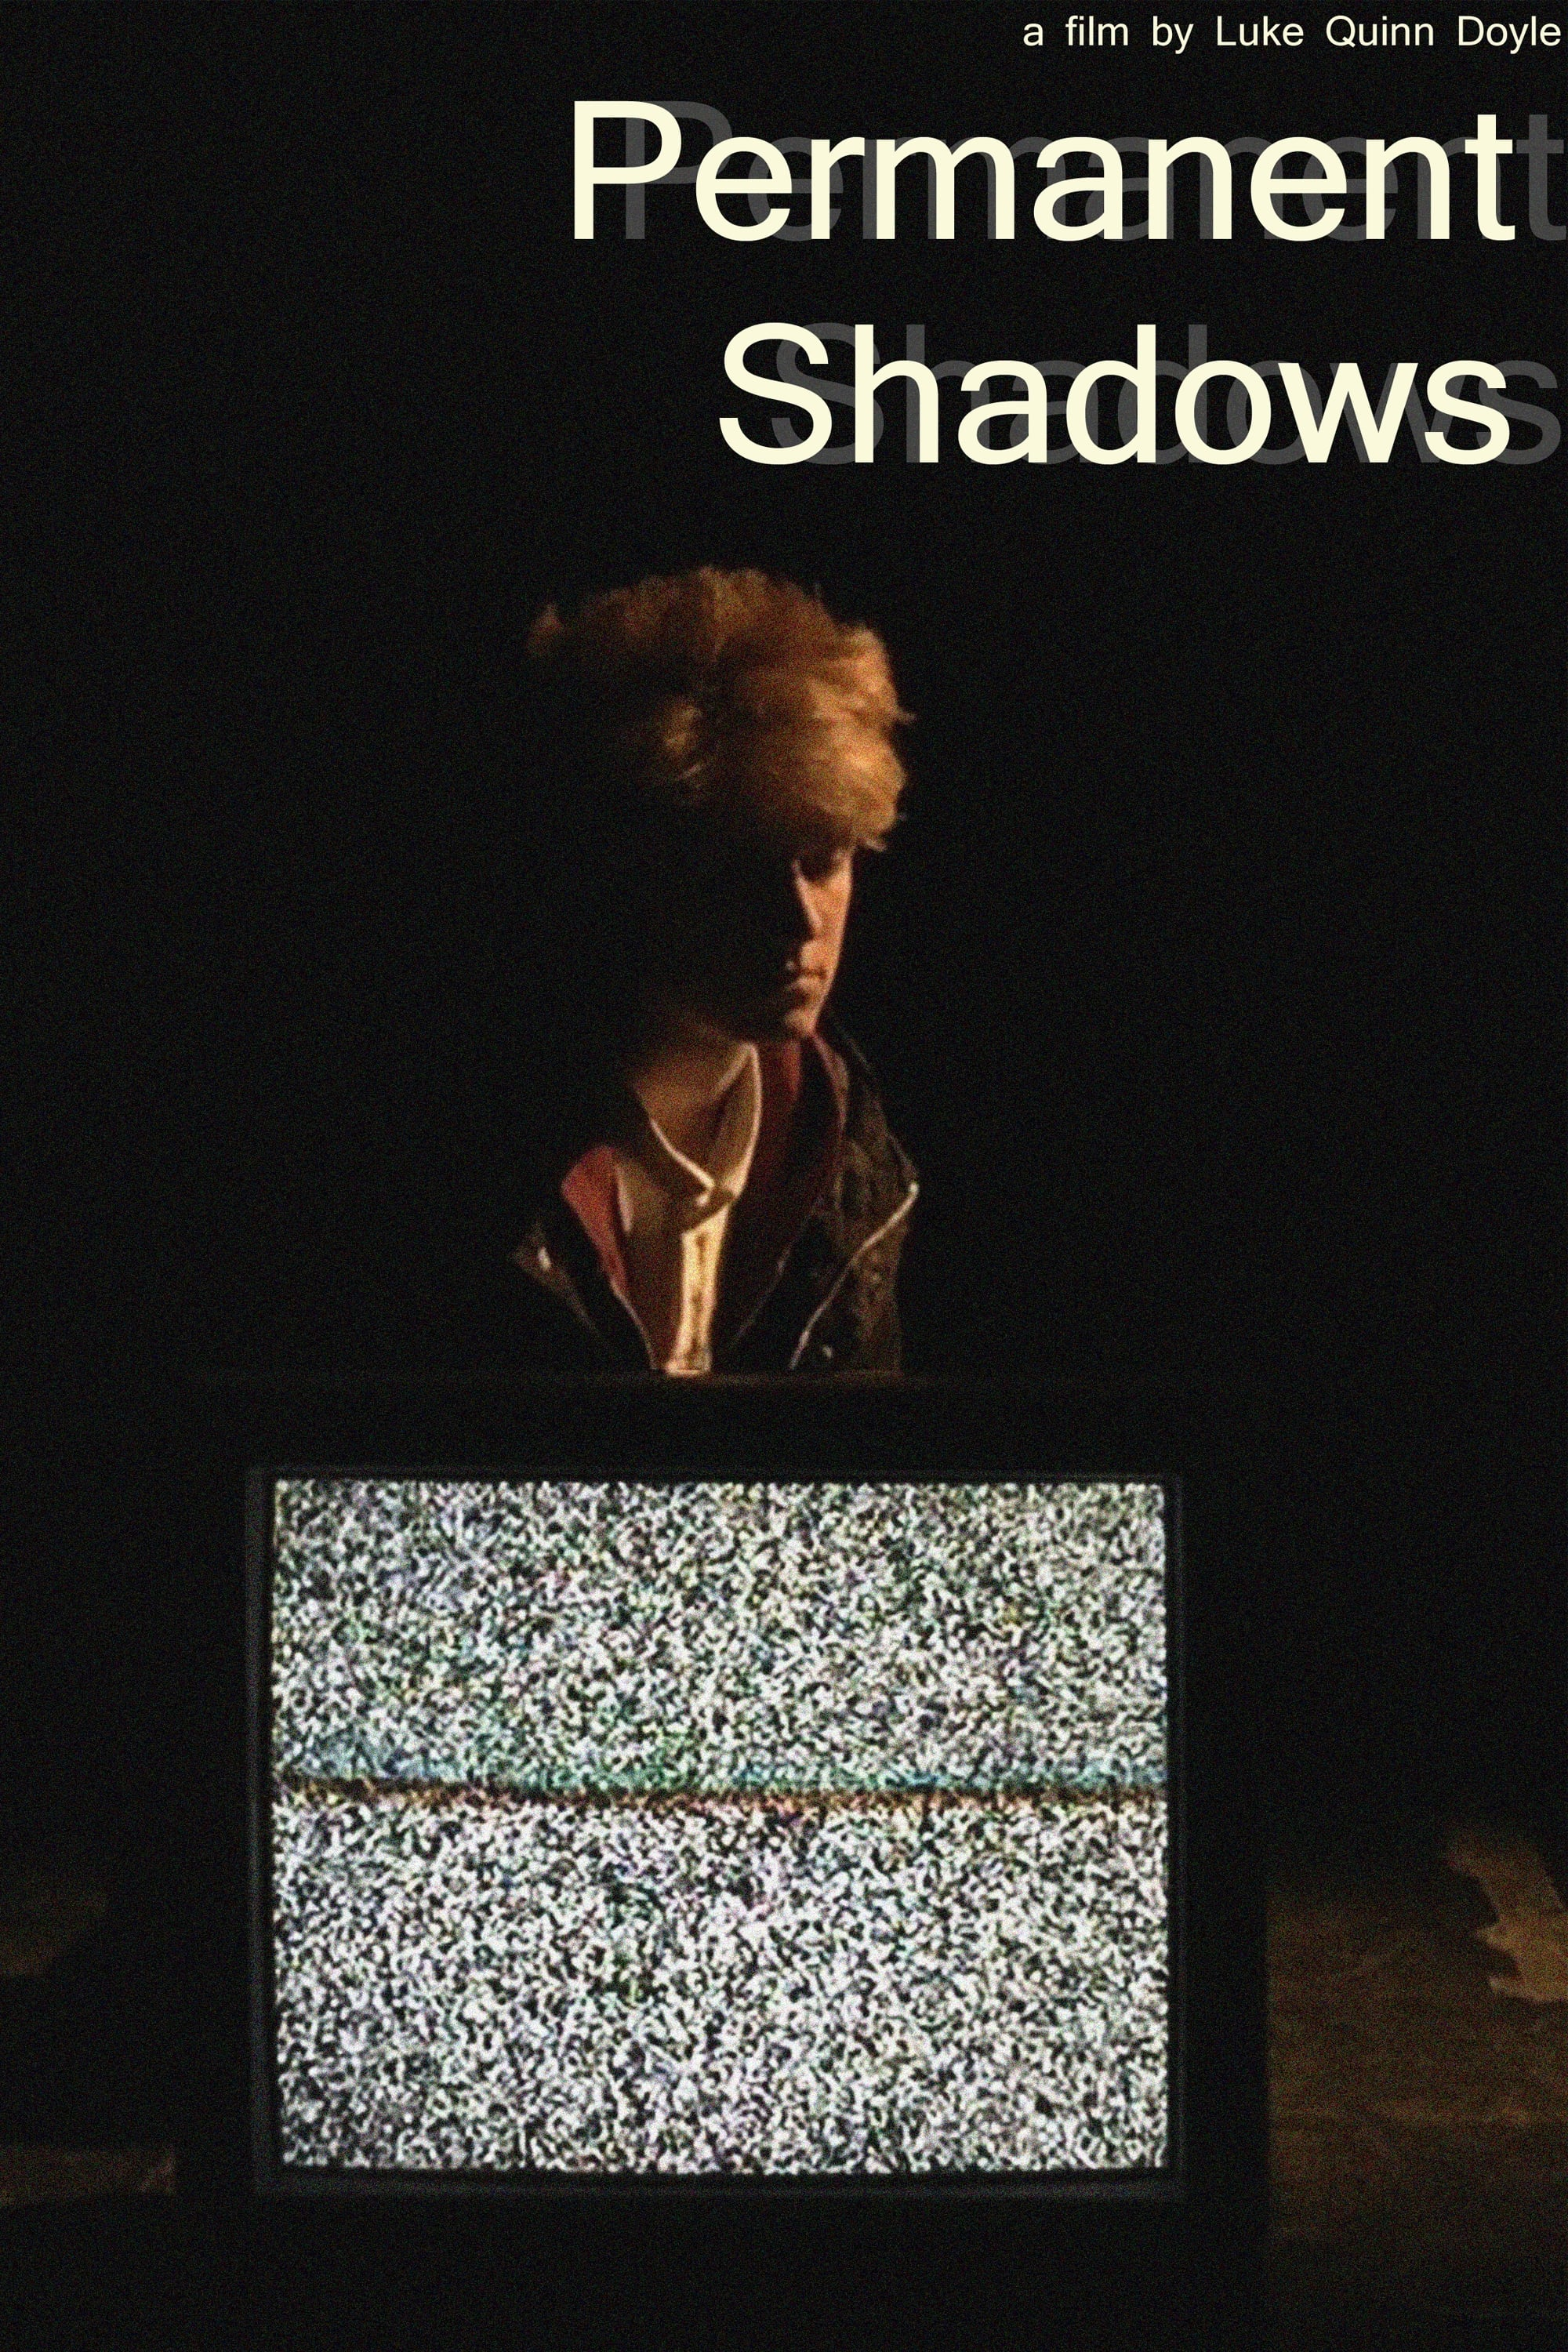 Permanent Shadows (2017)